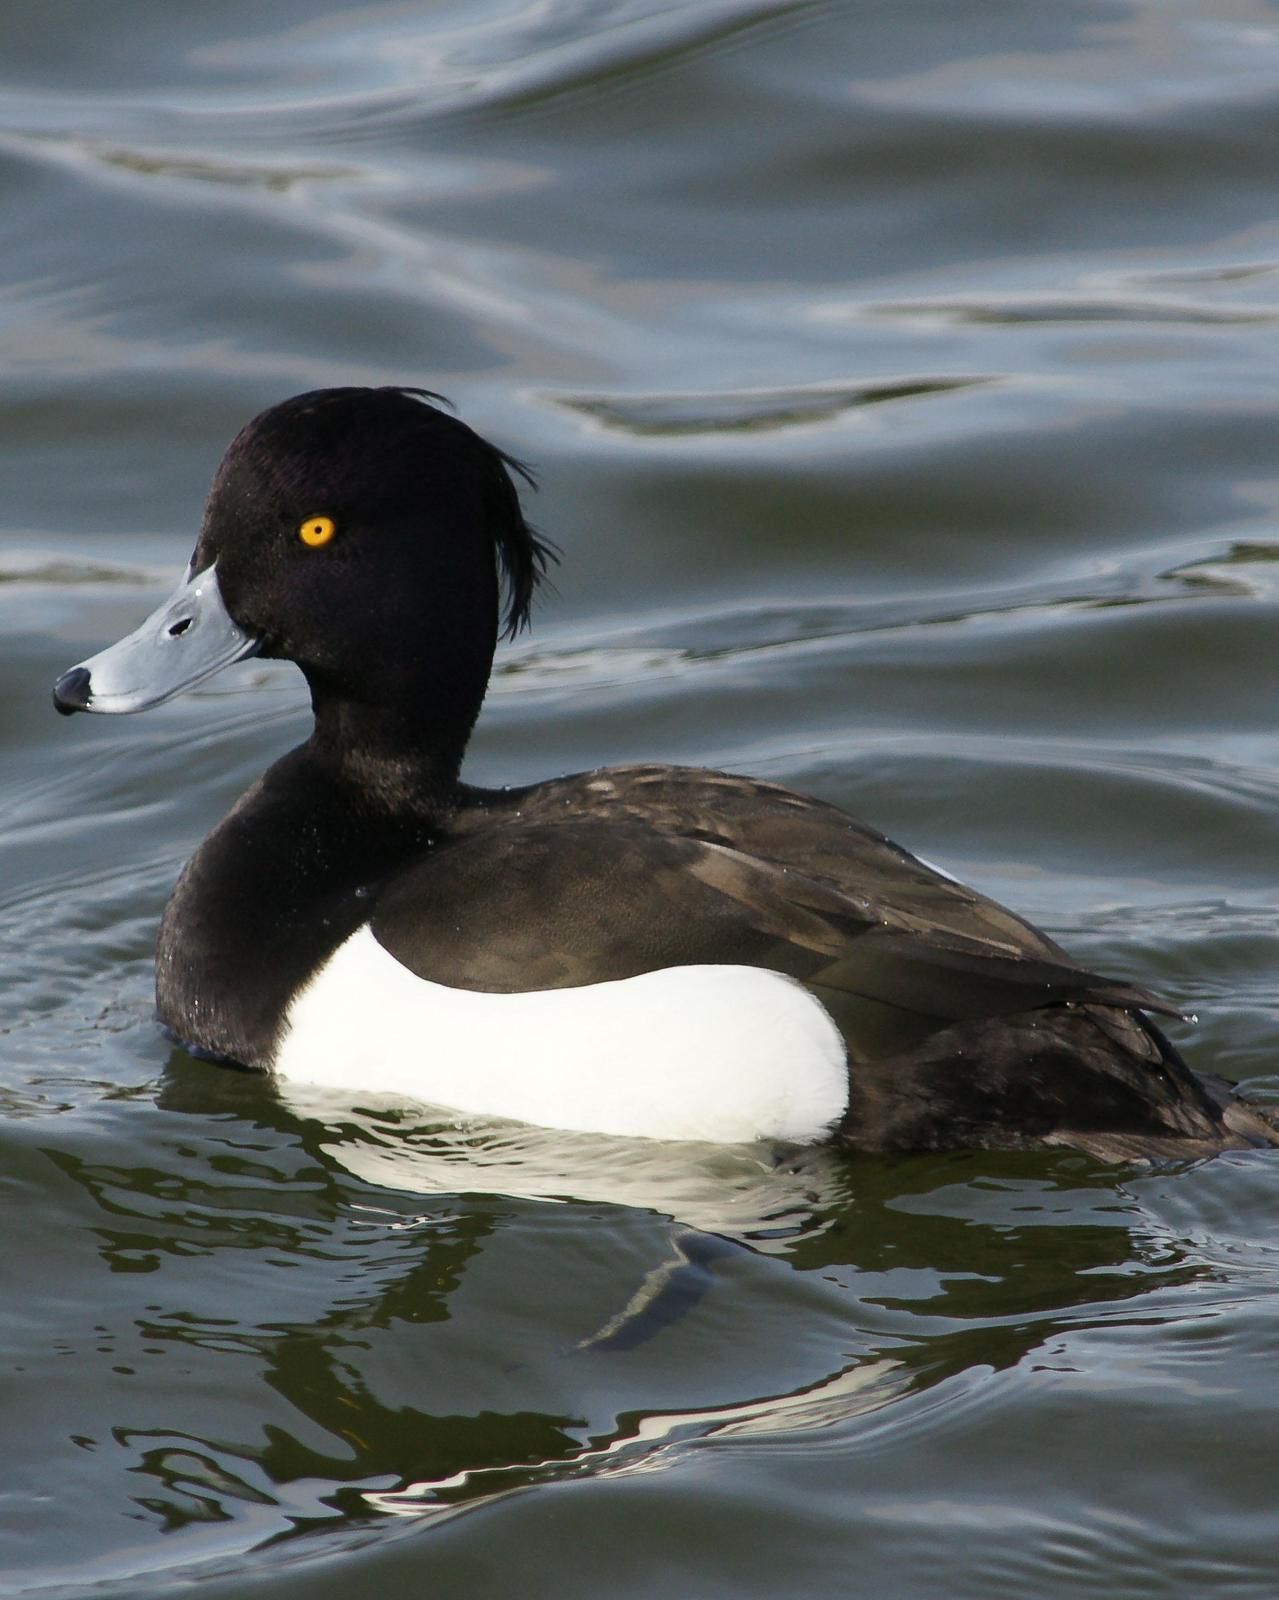 Tufted Duck Photo by Steve Percival